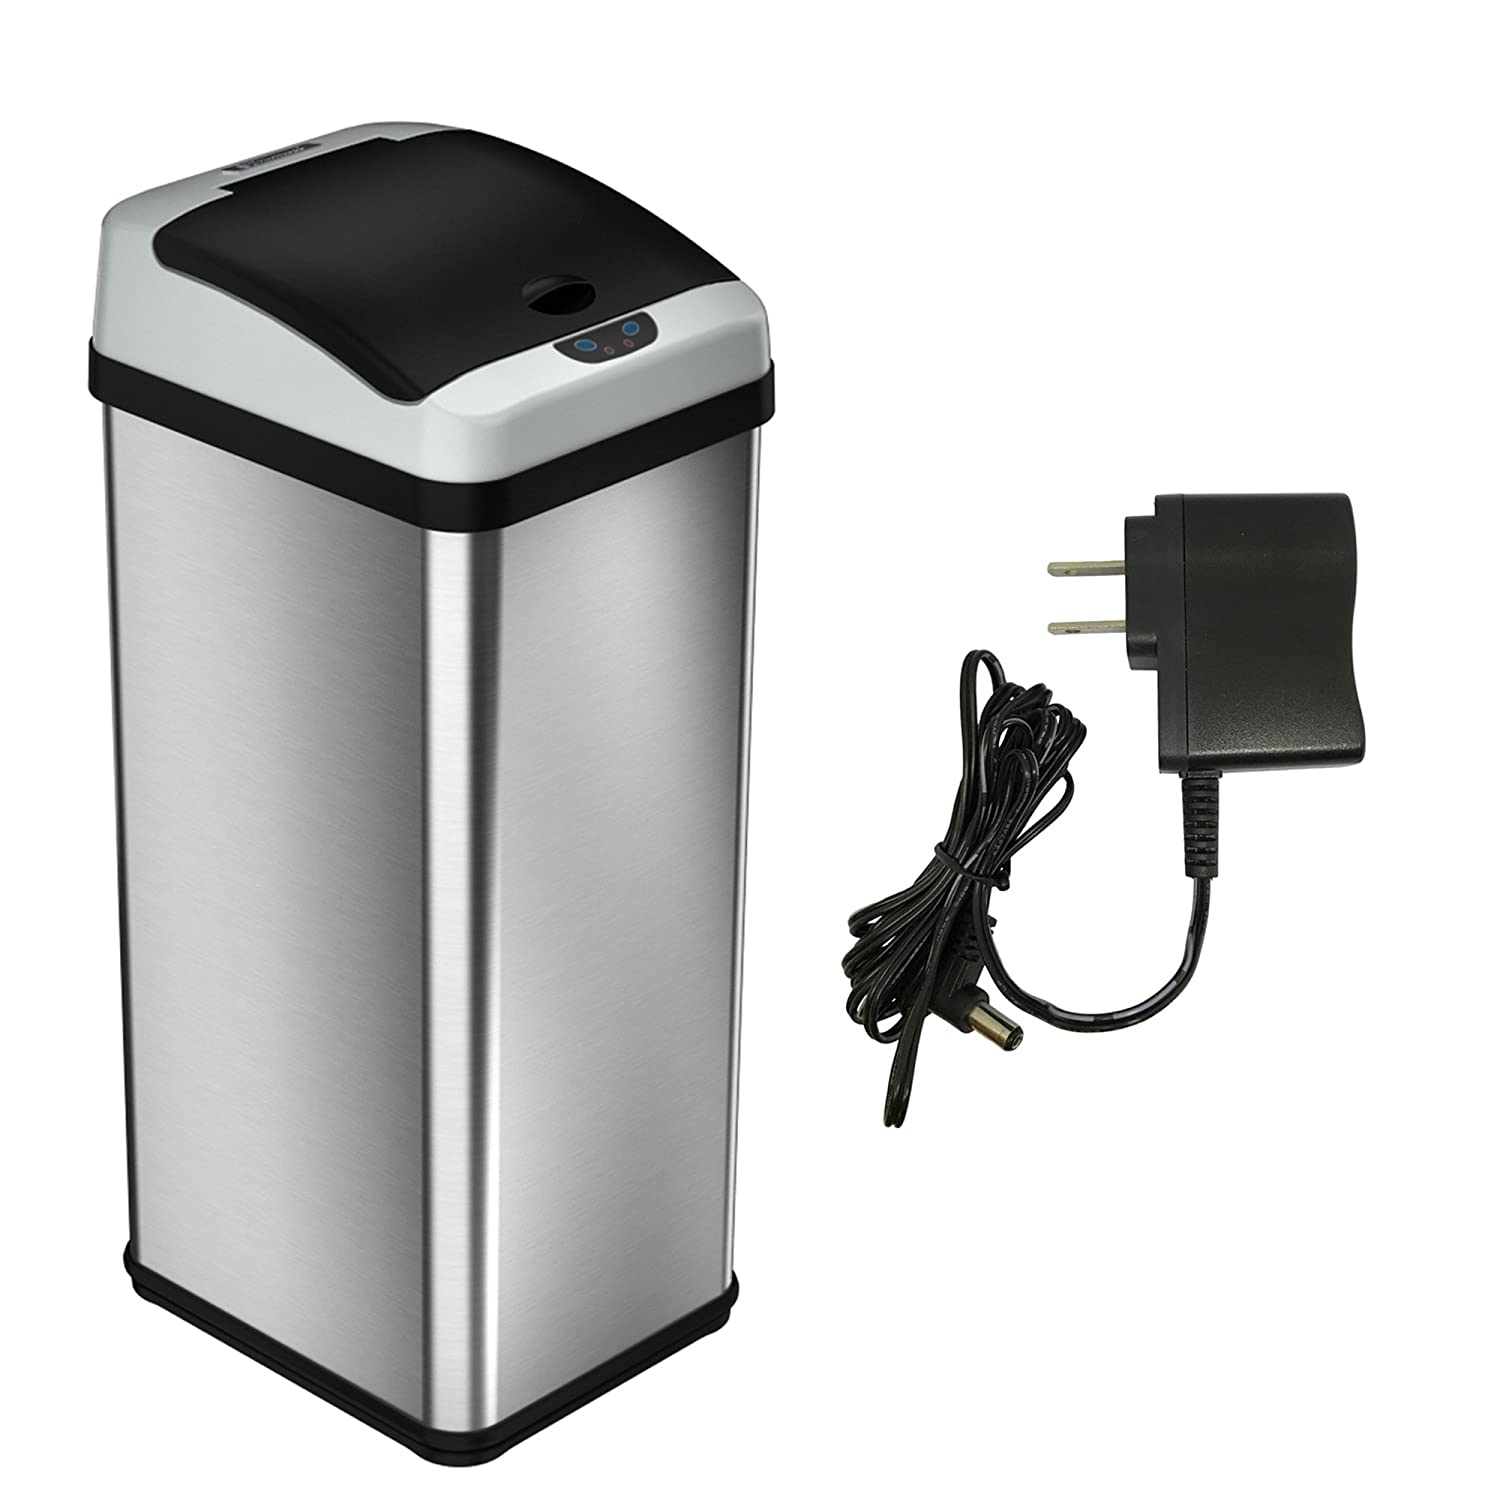 iTouchless 13 Gallon Stainless Steel Automatic Trash Can with Odor Control System, Big Lid Opening Sensor Touchless Kitchen Trash Bin (Base Version - No AC Adapter) DZT13/IT13CB